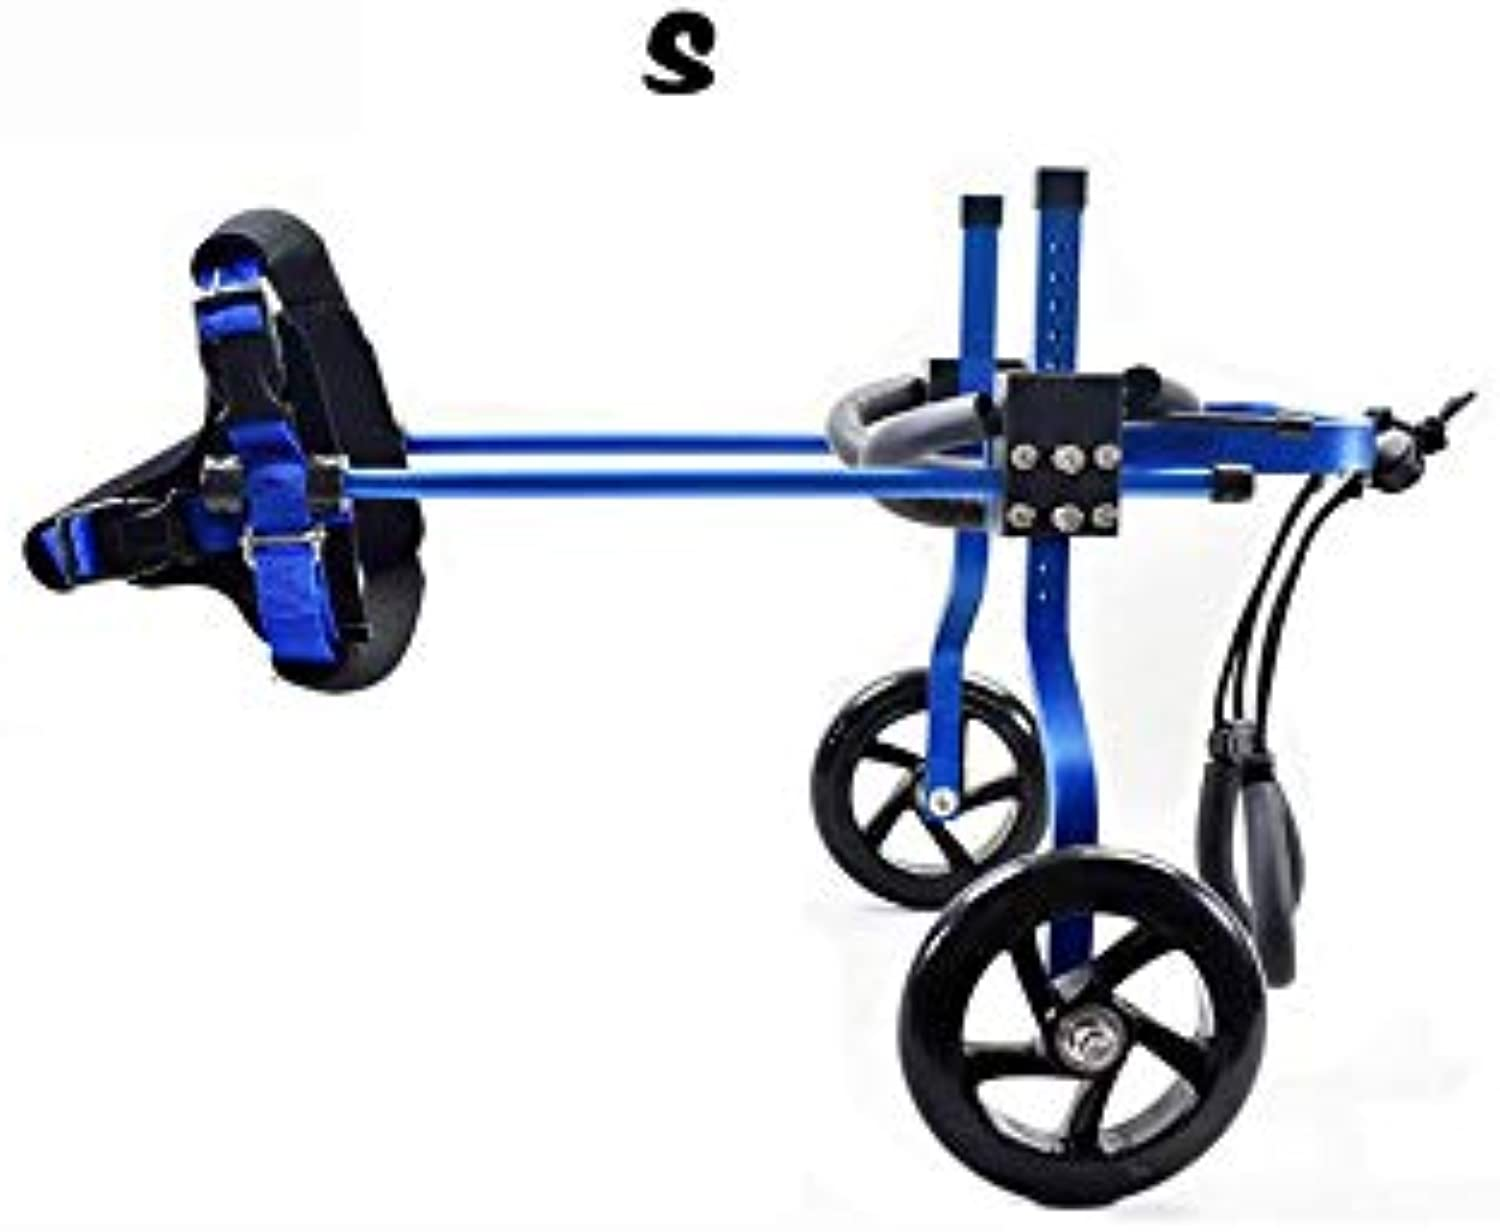 PLDDY Pet Bag 2wheel Pet Bicycle, Adjustable Dog Wheelchair, Scooter, Disabled Dog, Auxiliary, Leg Rehabilitation, Rear Support Wheelchair Red, bluee Pet Bicycles (color   bluee, Size   S)